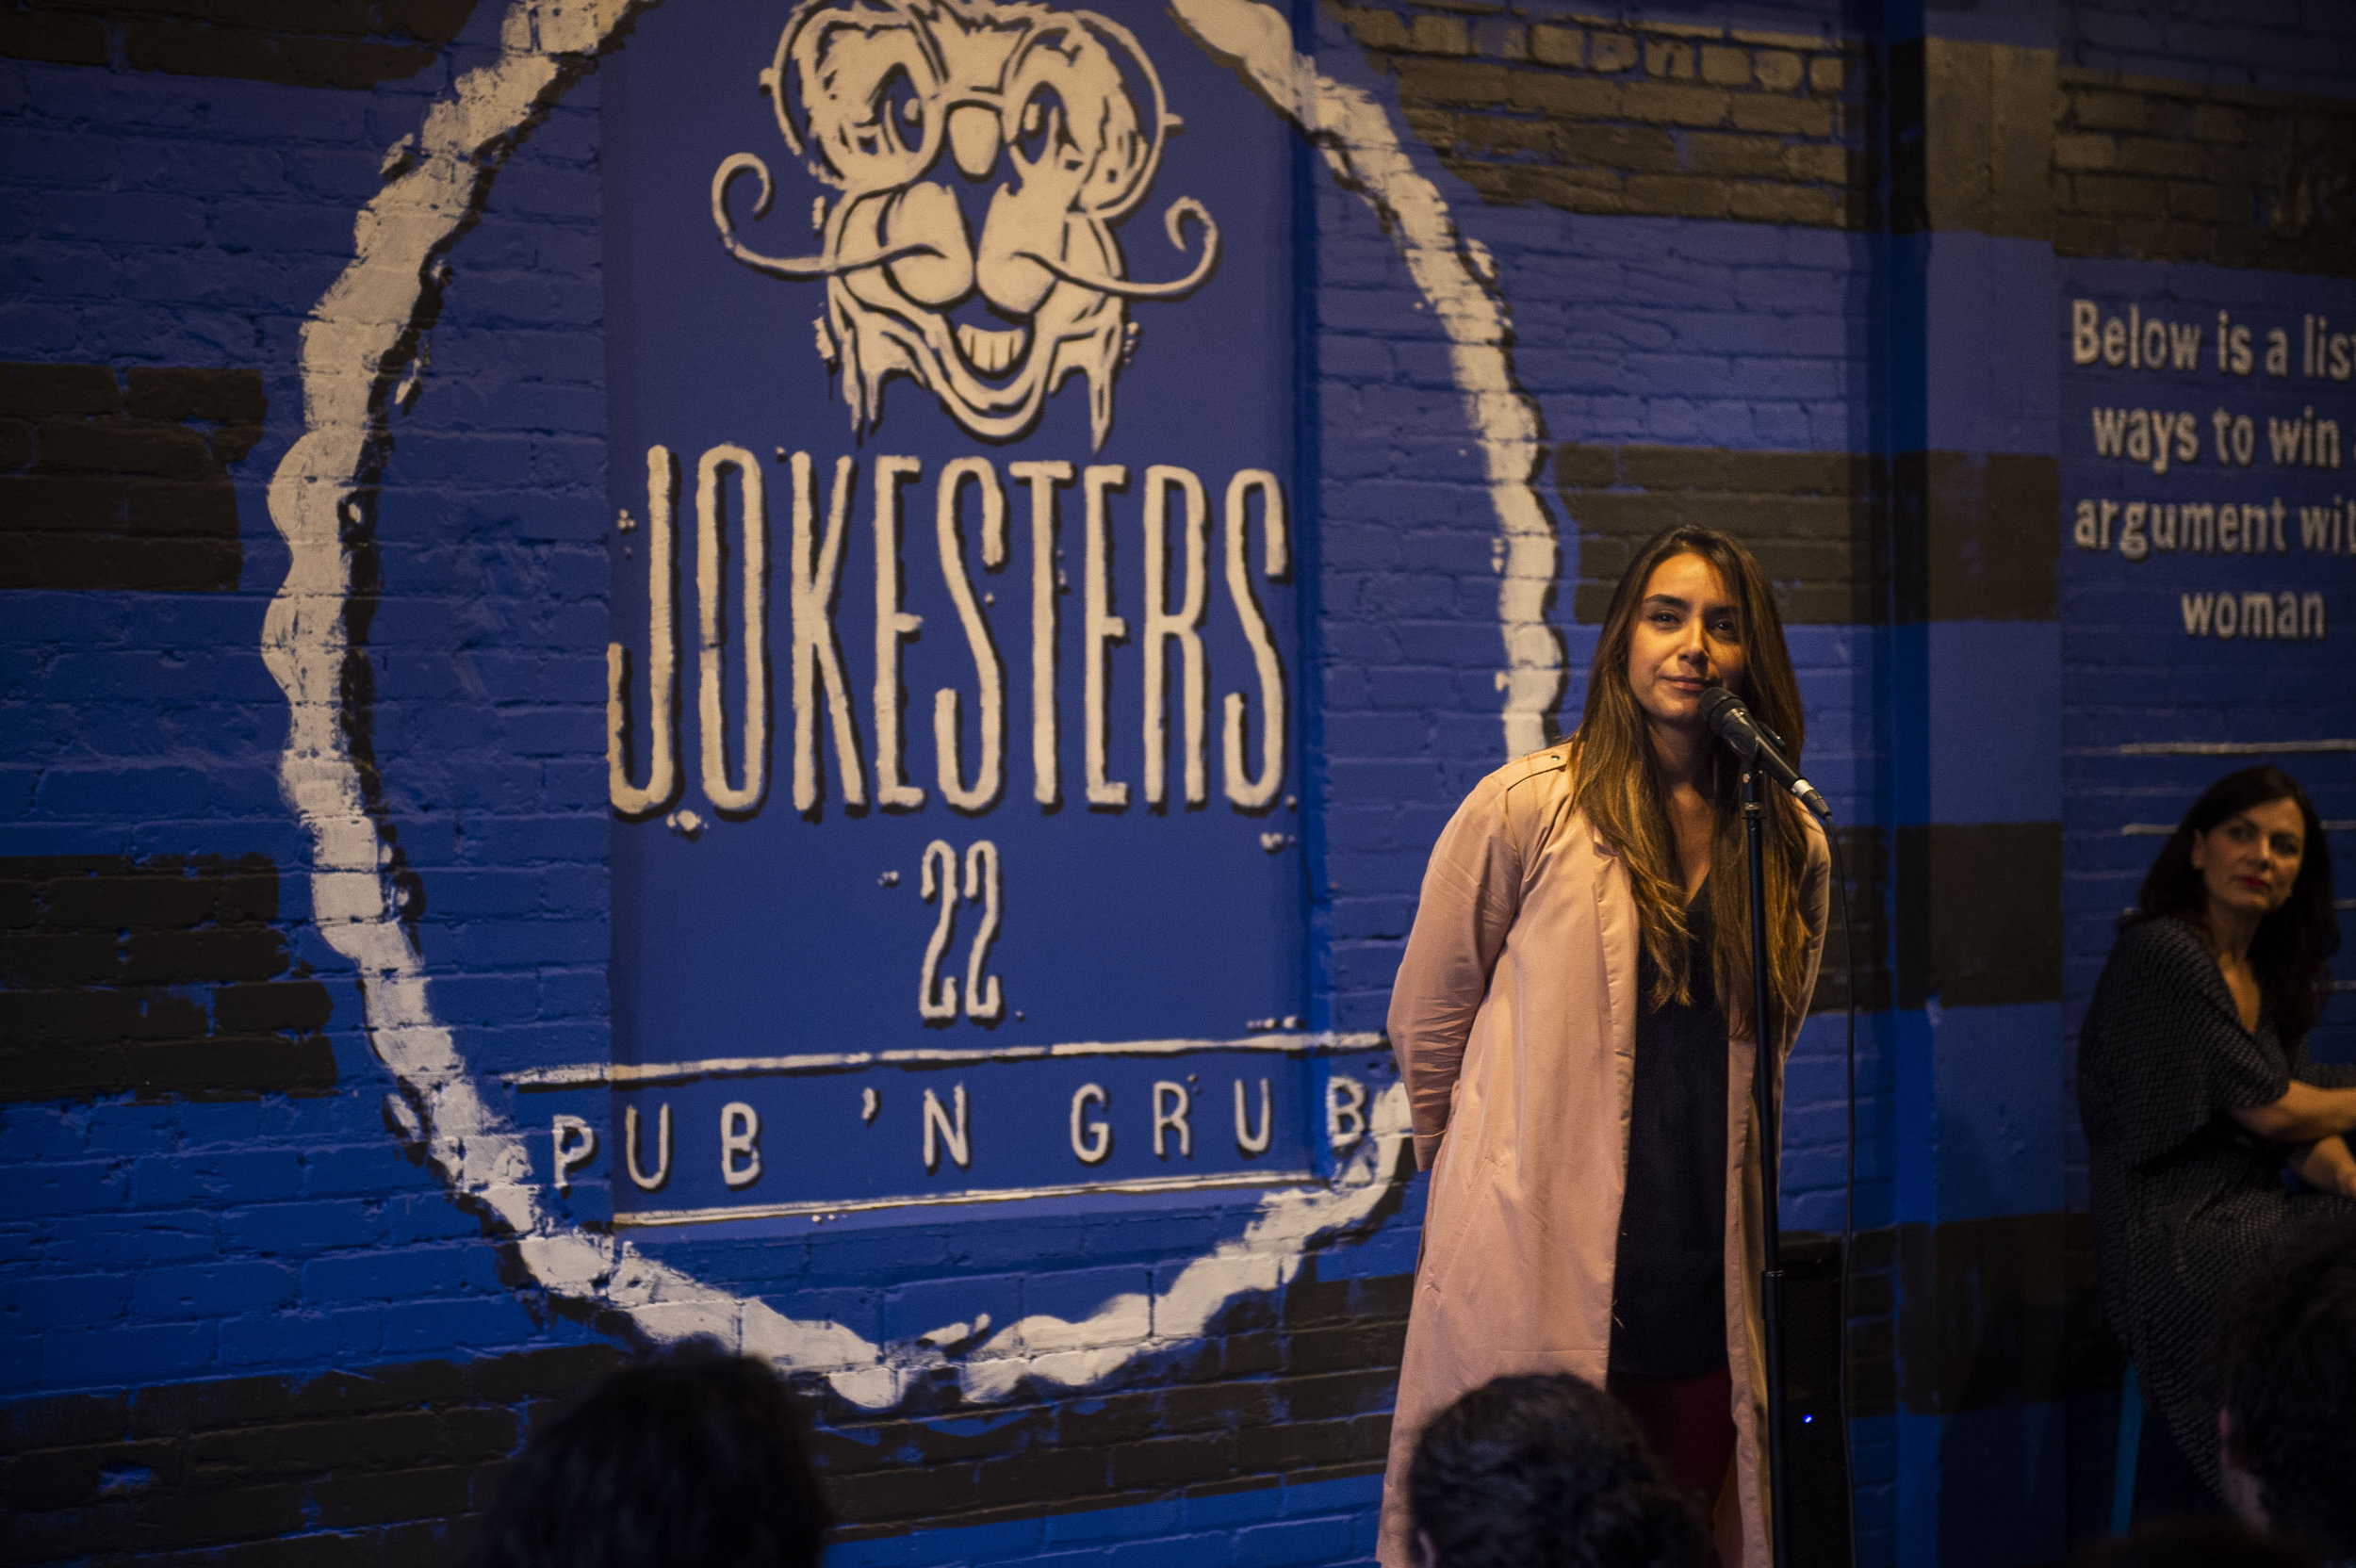 Minerva Contreras shares her story with our audience in Jokesters 22 in San Antonio, TX as part of a show done in collaboration with SACNAS (Society for Advancement of Chicanos/Hispanics and Native Americans in Science) in October 2018. Photo by Lisa Helfert.